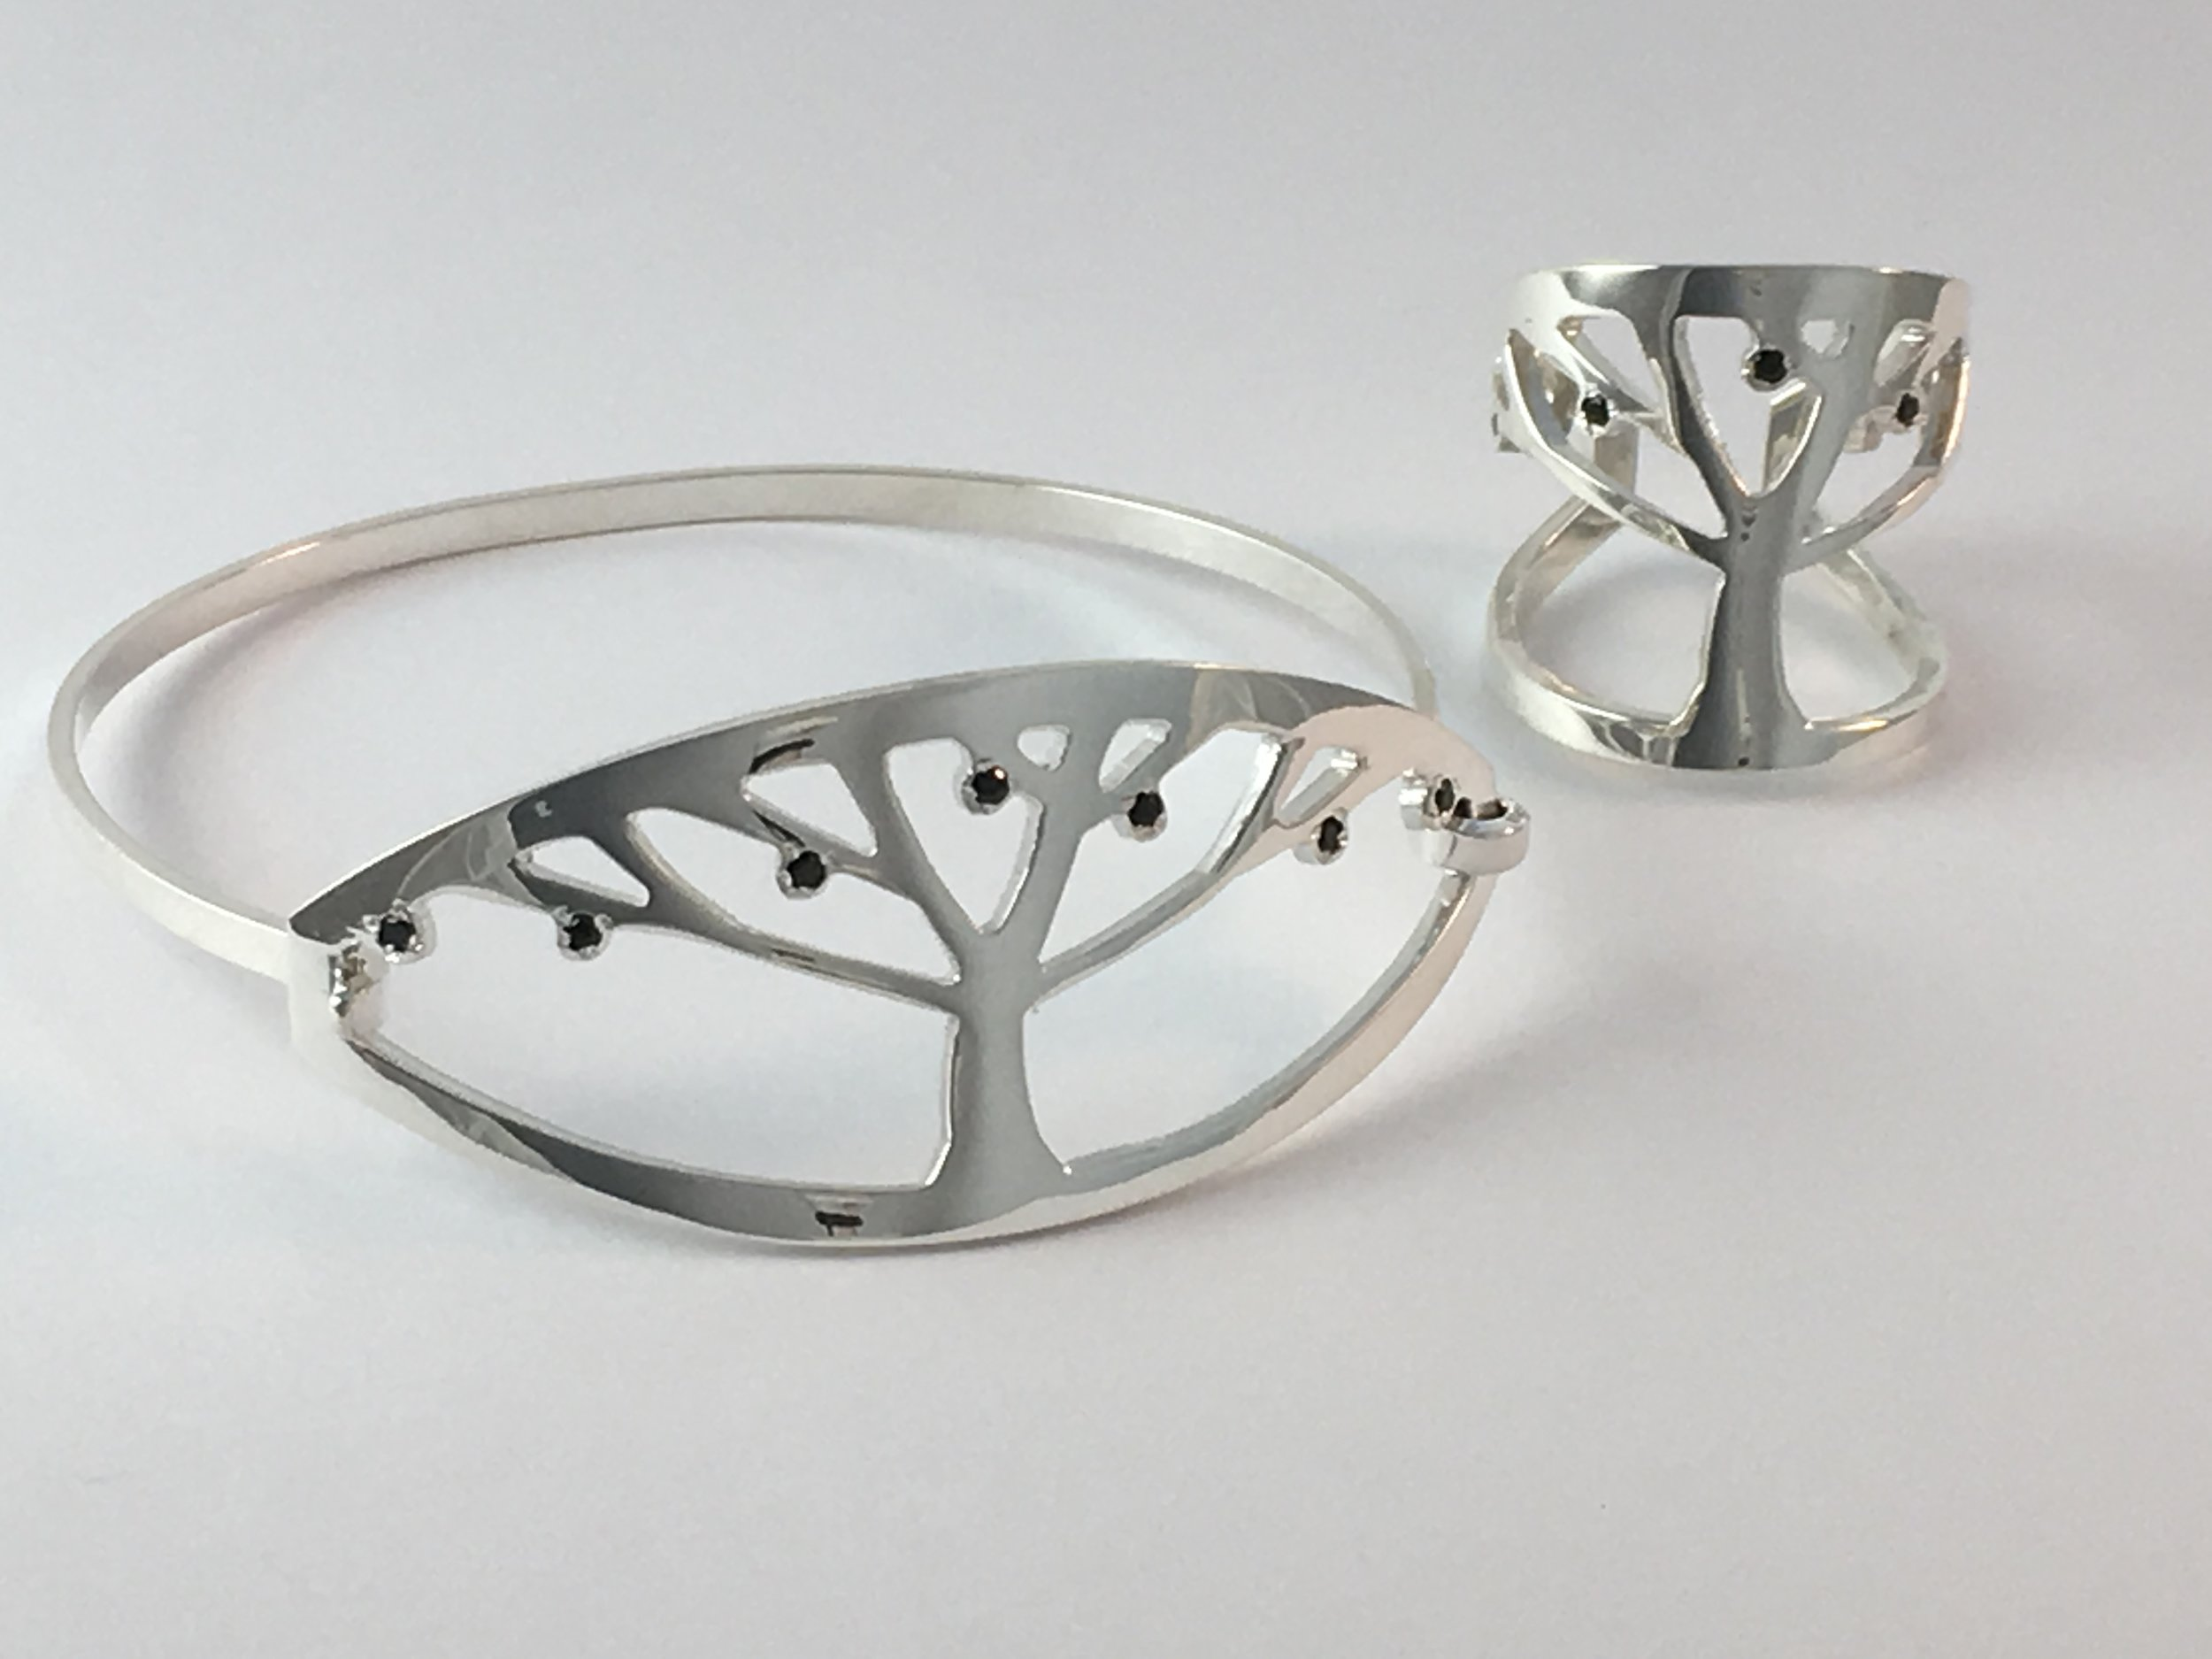 Tree of Life Bracelet and Ring Judaic Jewelry